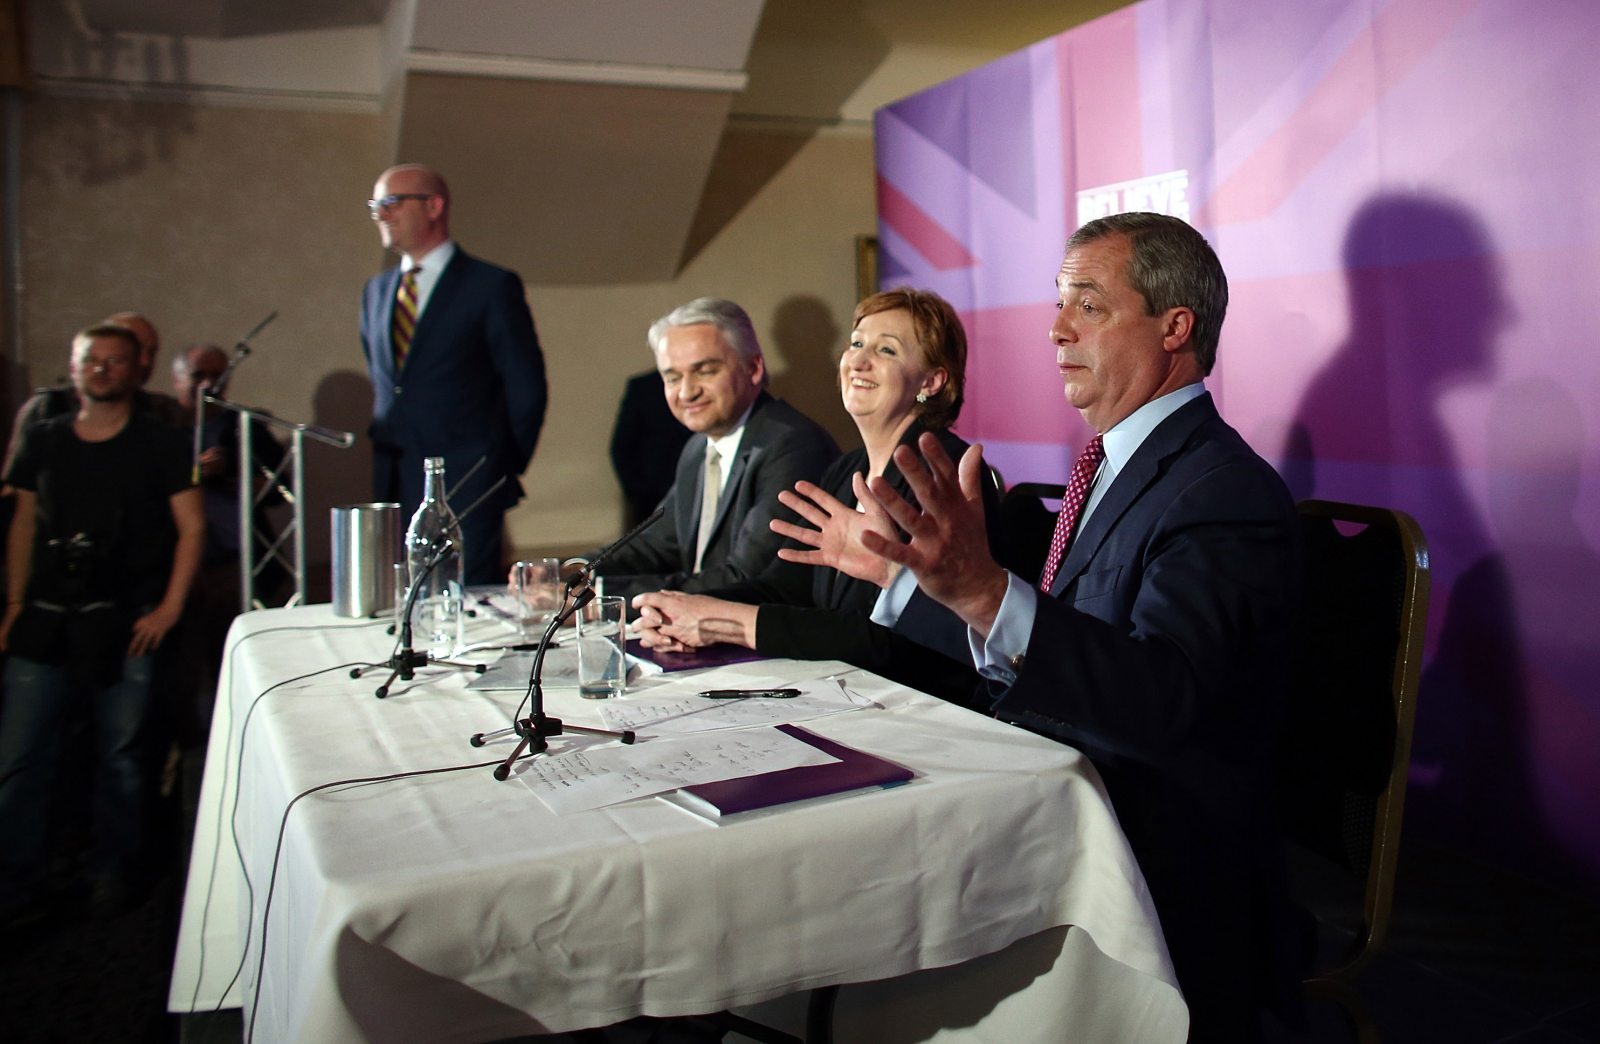 Nigel Farage and Ukip team